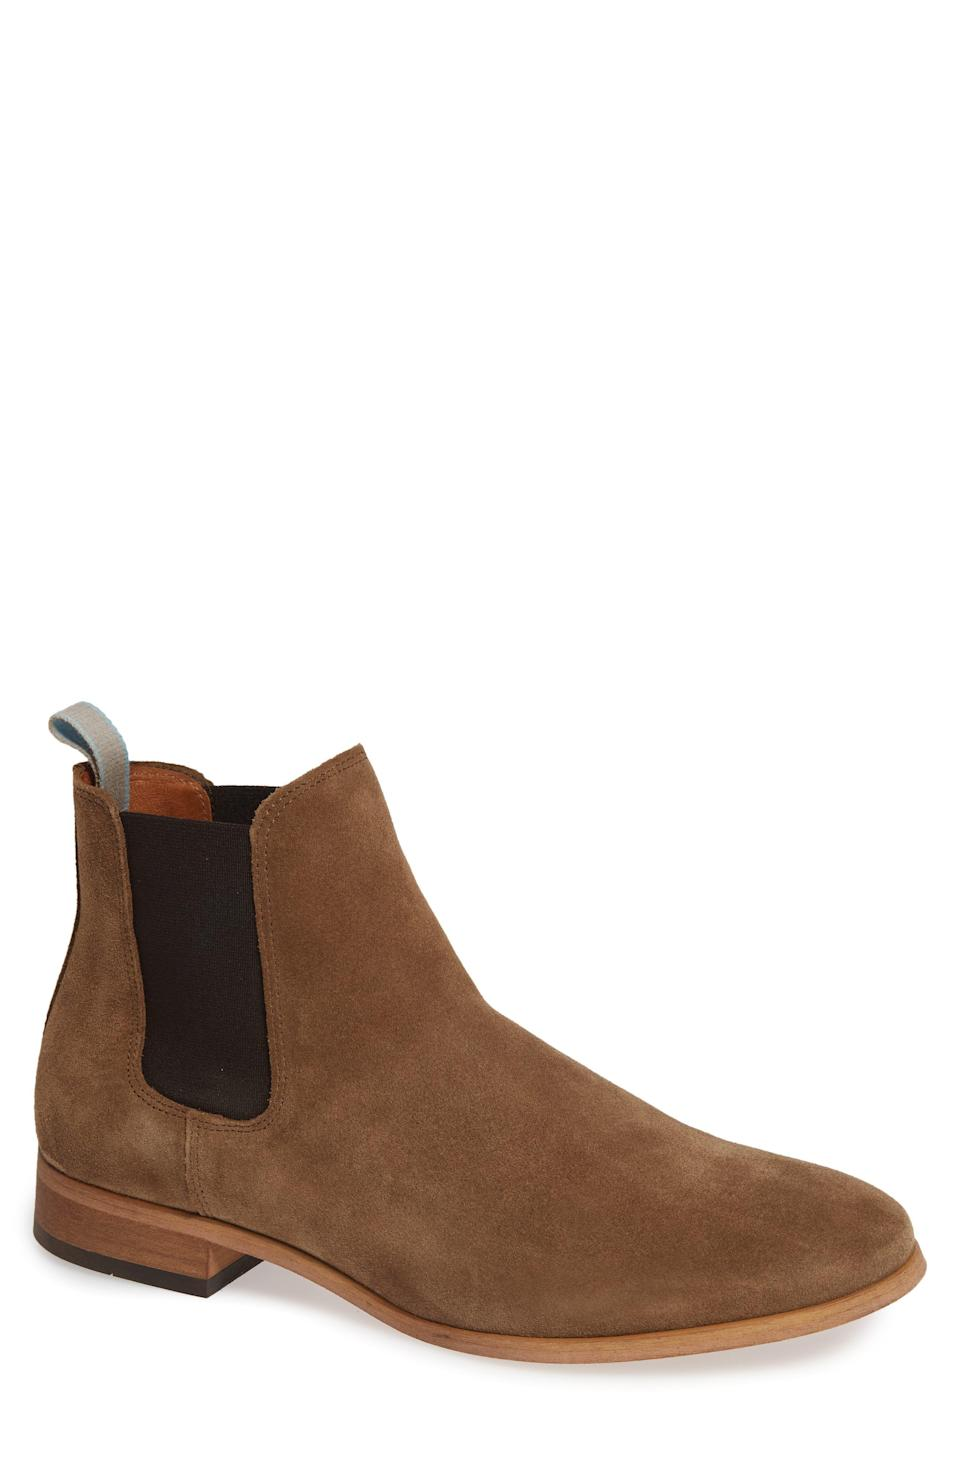 """<p><strong>SHOE THE BEAR</strong></p><p>nordstrom.com</p><p><strong>$120.00</strong></p><p><a href=""""https://go.redirectingat.com?id=74968X1596630&url=https%3A%2F%2Fwww.nordstrom.com%2Fs%2Fshoe-the-bear-dev-chelsea-boot-men%2F5184218&sref=https%3A%2F%2Fwww.esquire.com%2Fstyle%2Fmens-fashion%2Fg28186249%2Fbusiness-casual-shoes%2F"""" rel=""""nofollow noopener"""" target=""""_blank"""" data-ylk=""""slk:Shop Now"""" class=""""link rapid-noclick-resp"""">Shop Now</a></p><p>Second only to the desert boot in the business casual spectrum is the mighty Chelsea boot. Whether dressing up or dressing down, this style consistently walks the line with aplomb. </p>"""